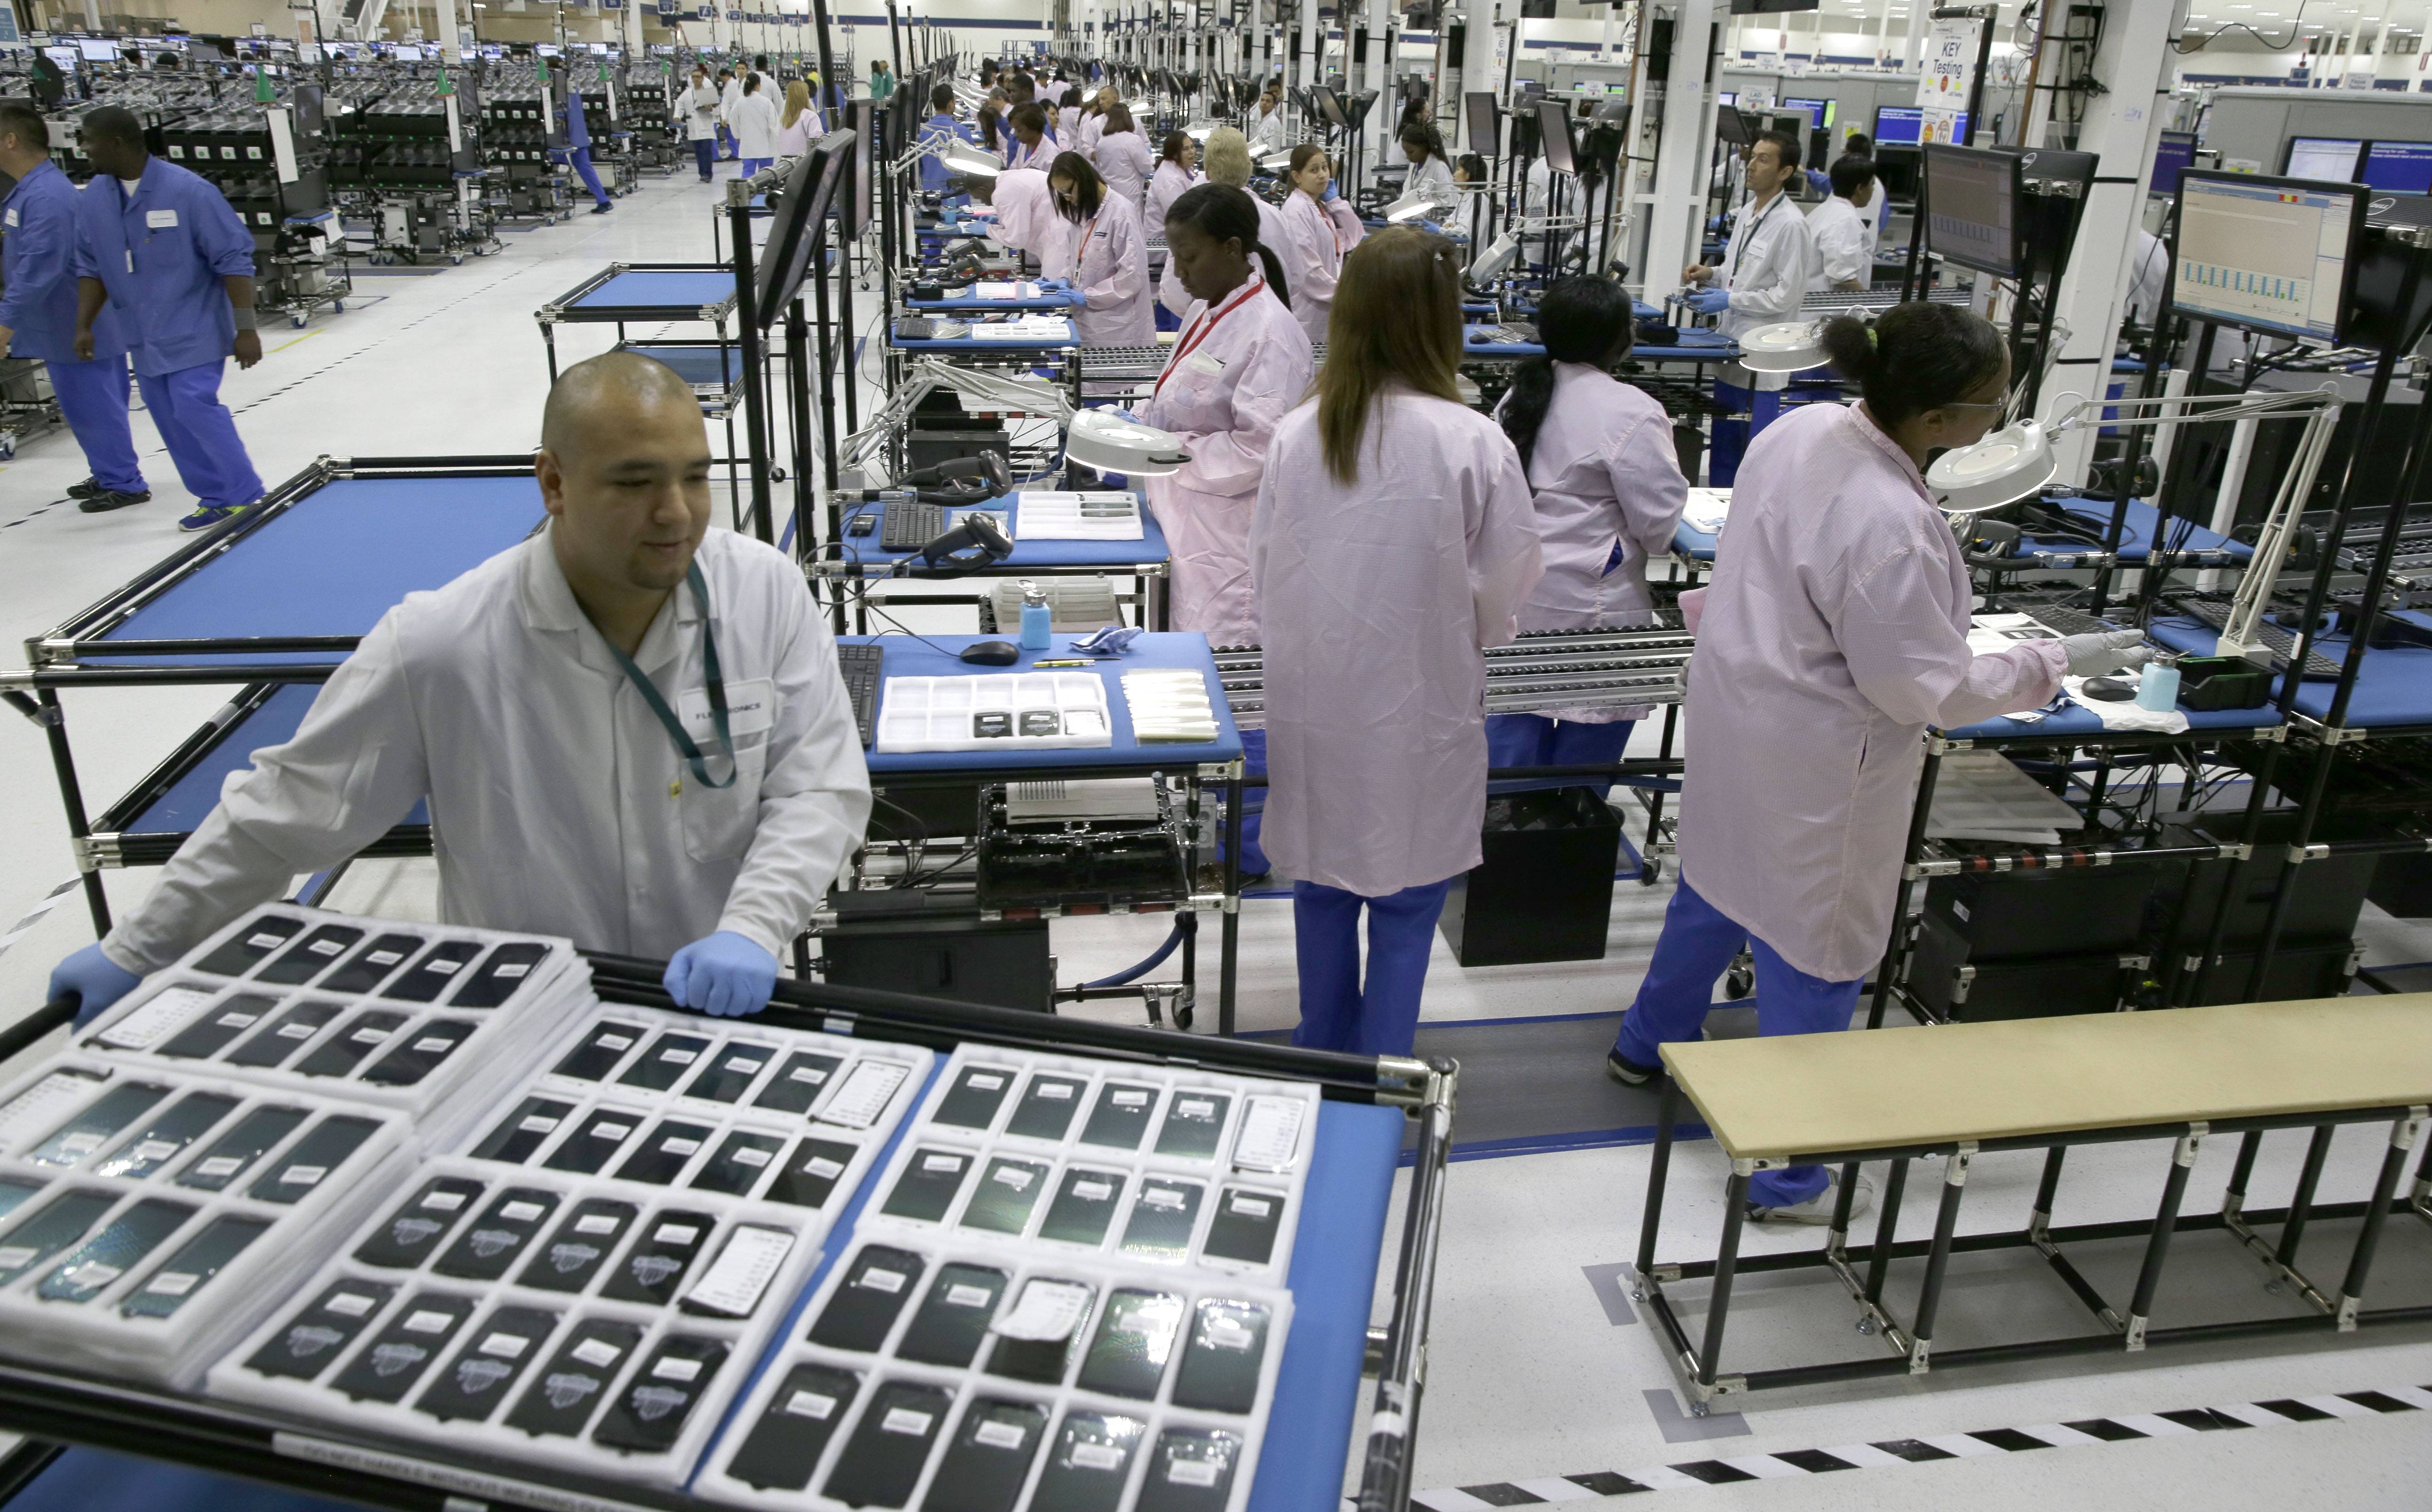 Workers man the Motorola smartphone plant in Fort Worth, Texas. Cellphone pioneer Motorola has announced it's closing a Texas manufacturing facility just a year after announcing its opening.